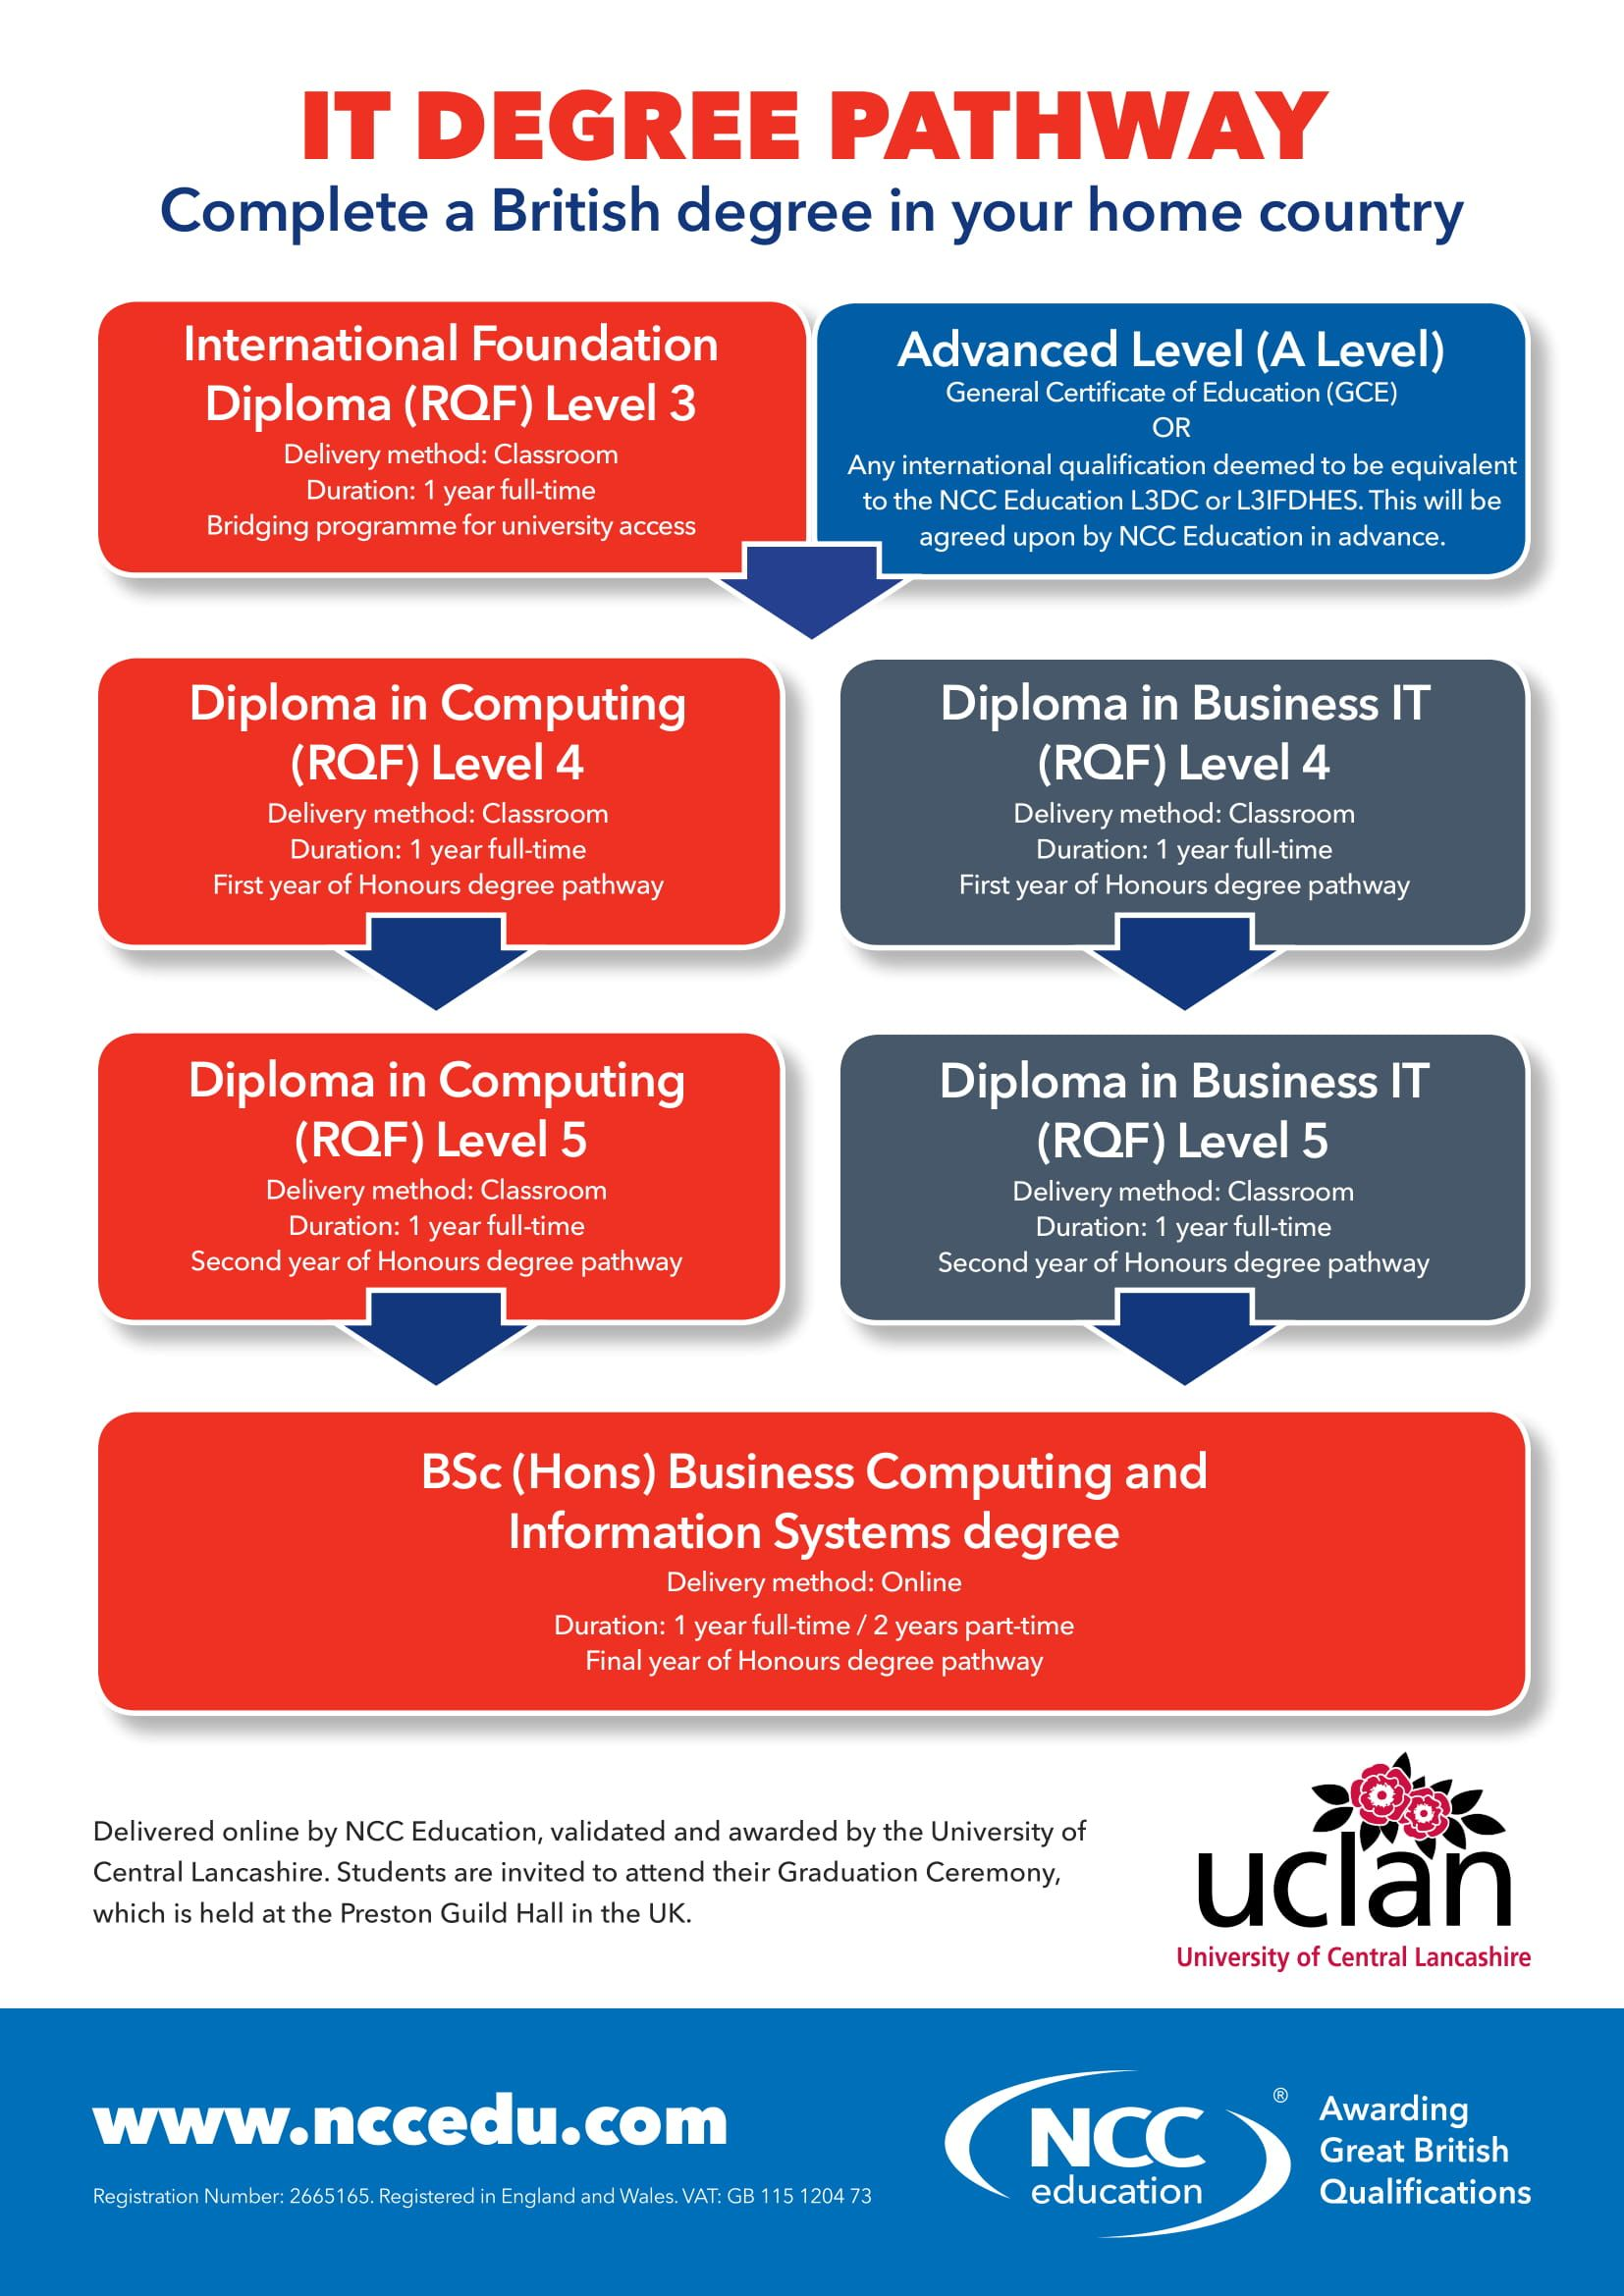 Complete A British Degree In Your Home Country With Our It Degree